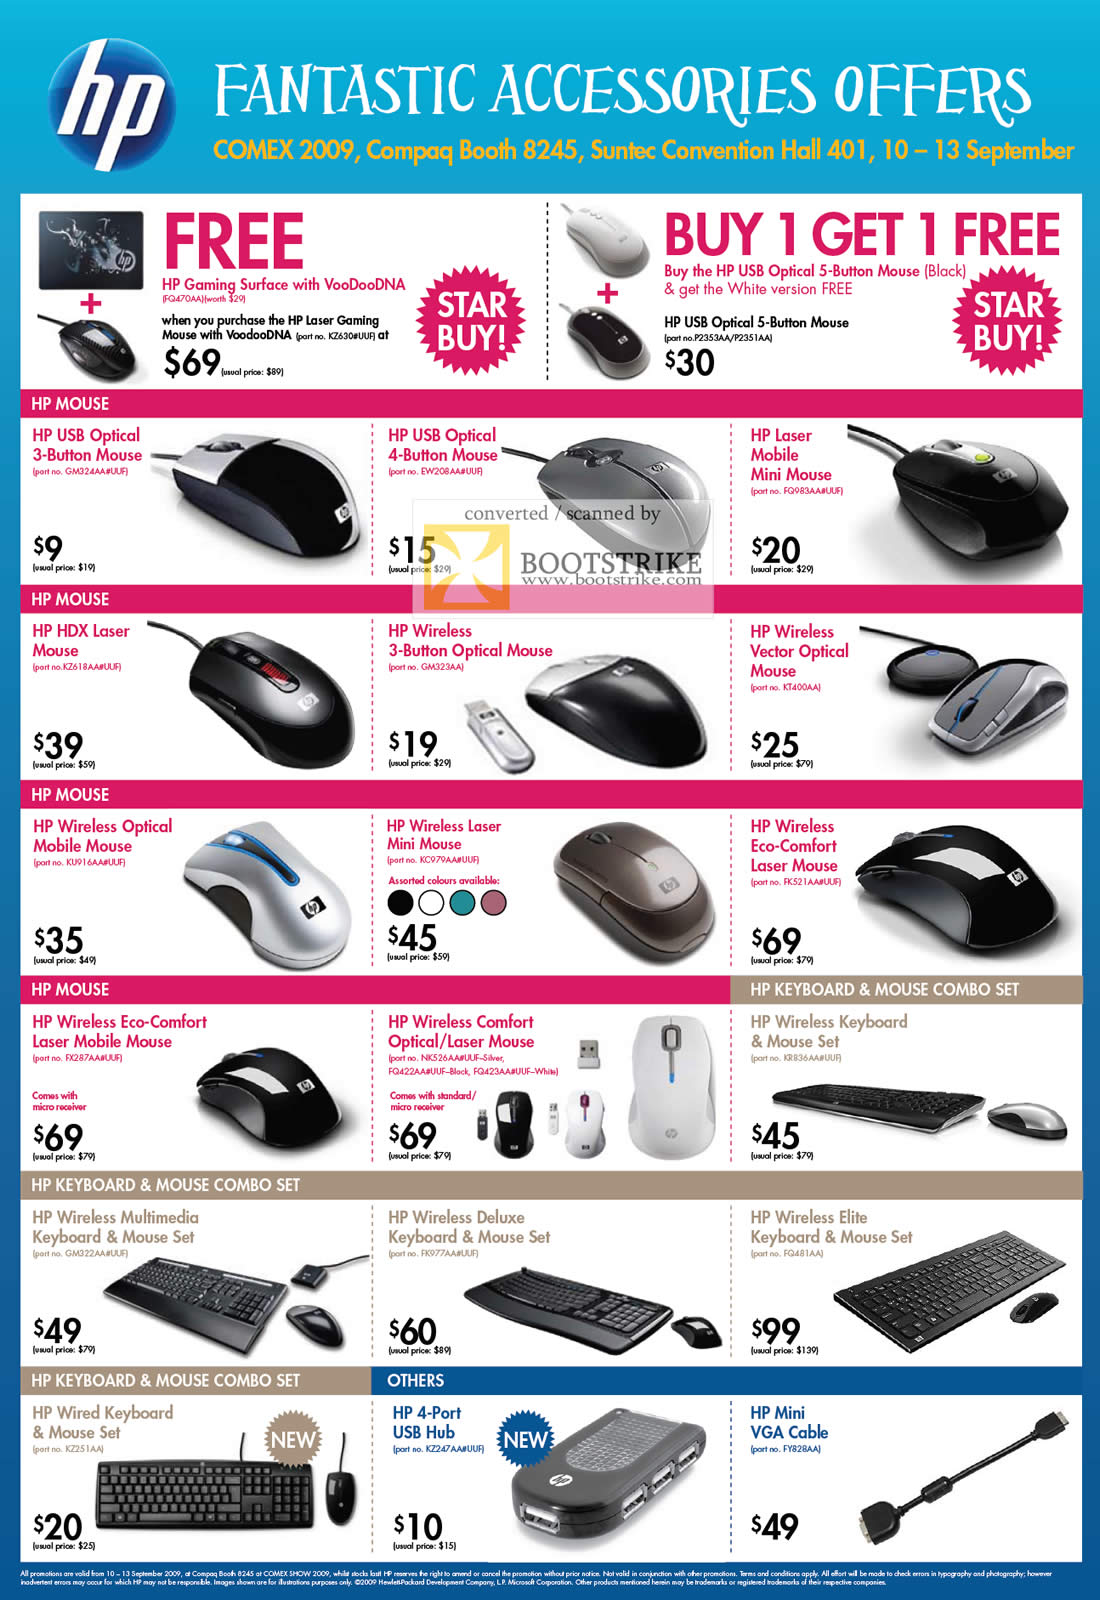 Comex 2009 price list image brochure of HP Accessories Mouse Keyboard USB Hub Mini VGA Cable